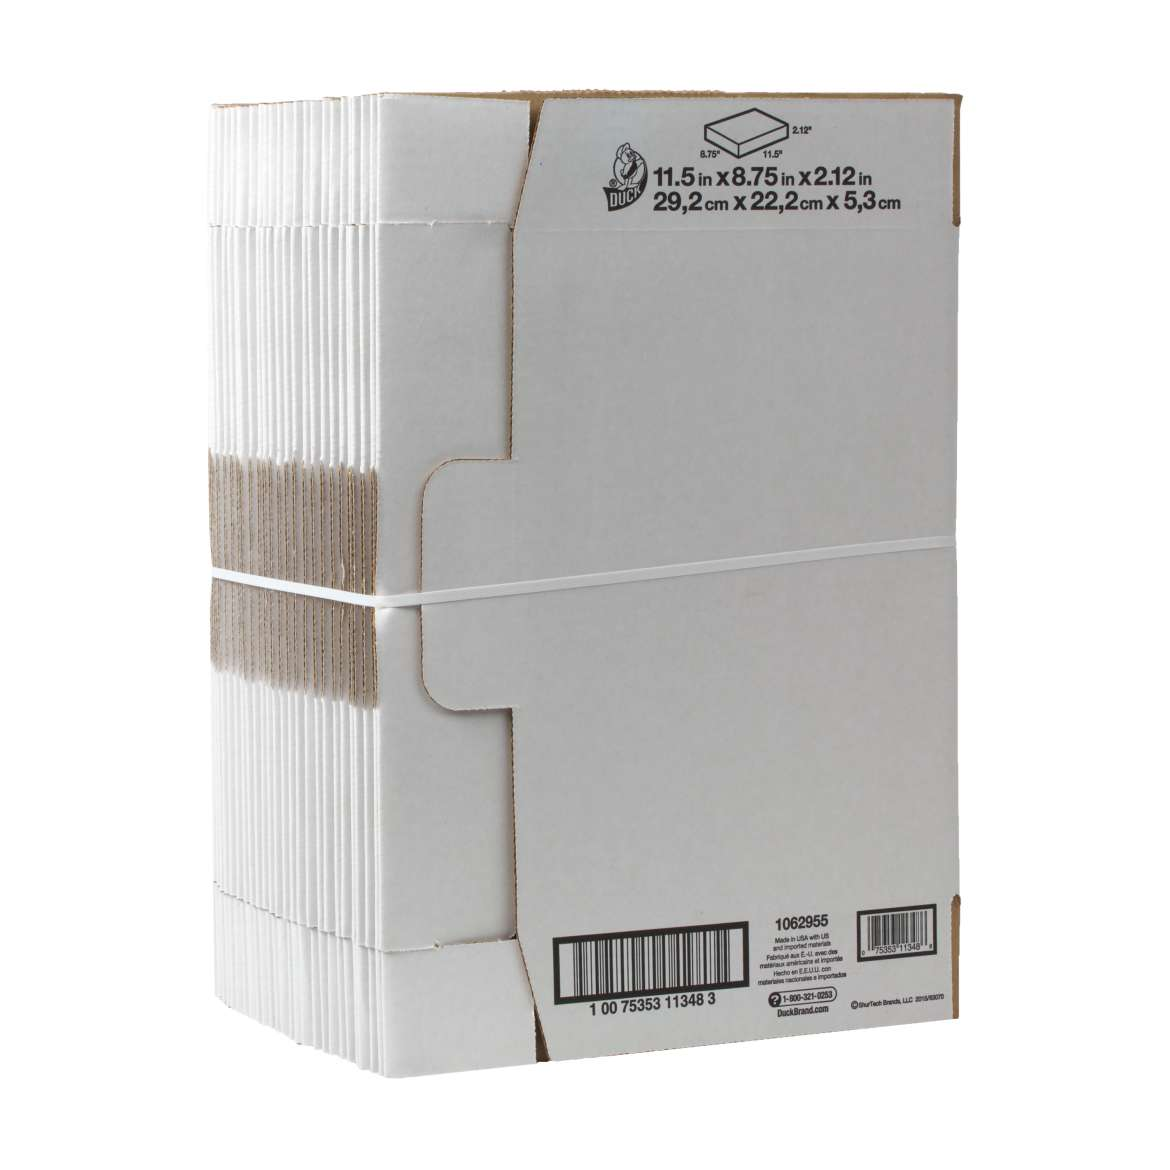 Duck® Brand Self-Locking Mailing Box - White, 25 pk, 11.5 in. x 8.75 in. x 2.1 in. Image